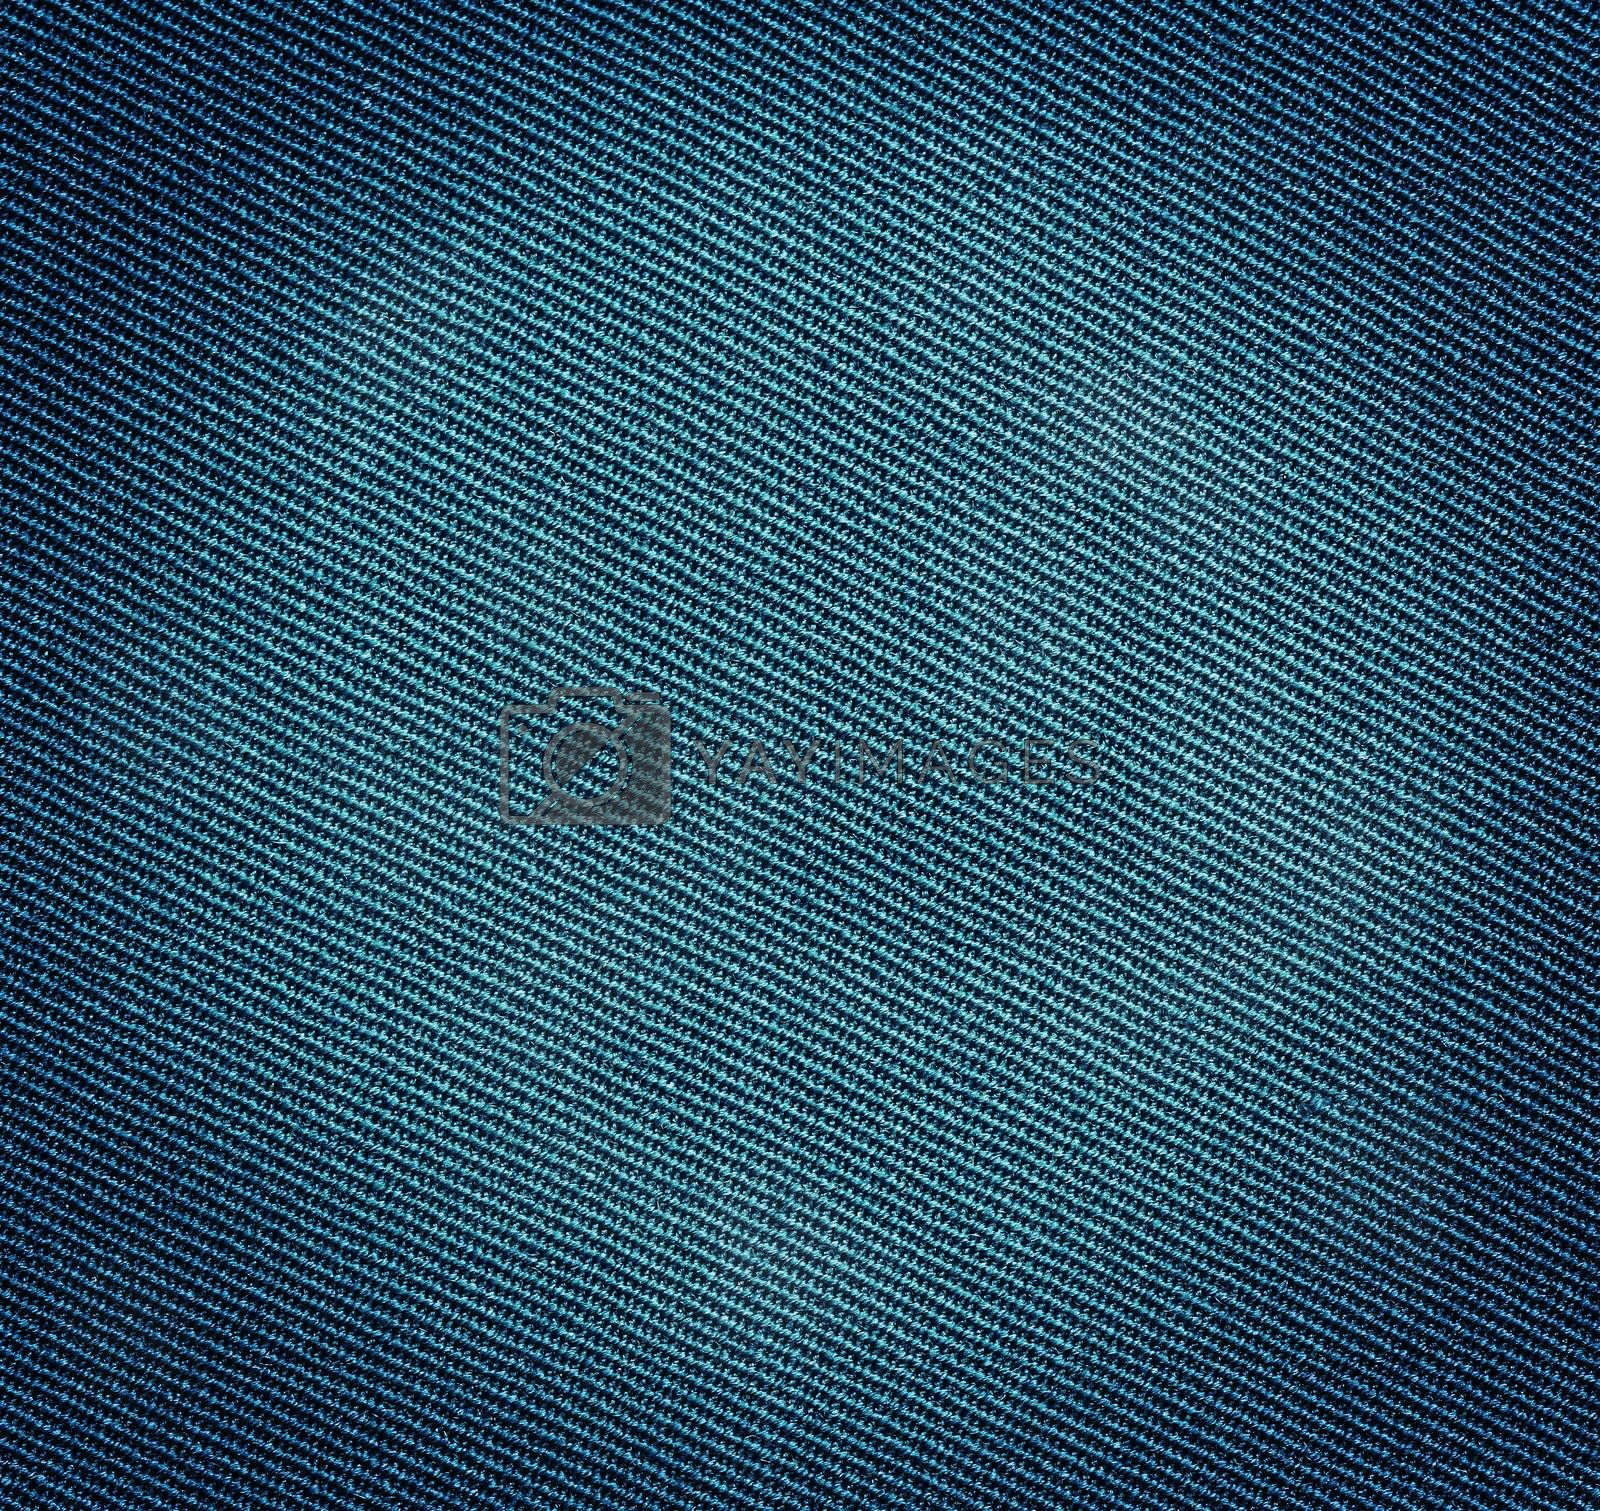 Royalty free image of Jeans texture by vadimmmus